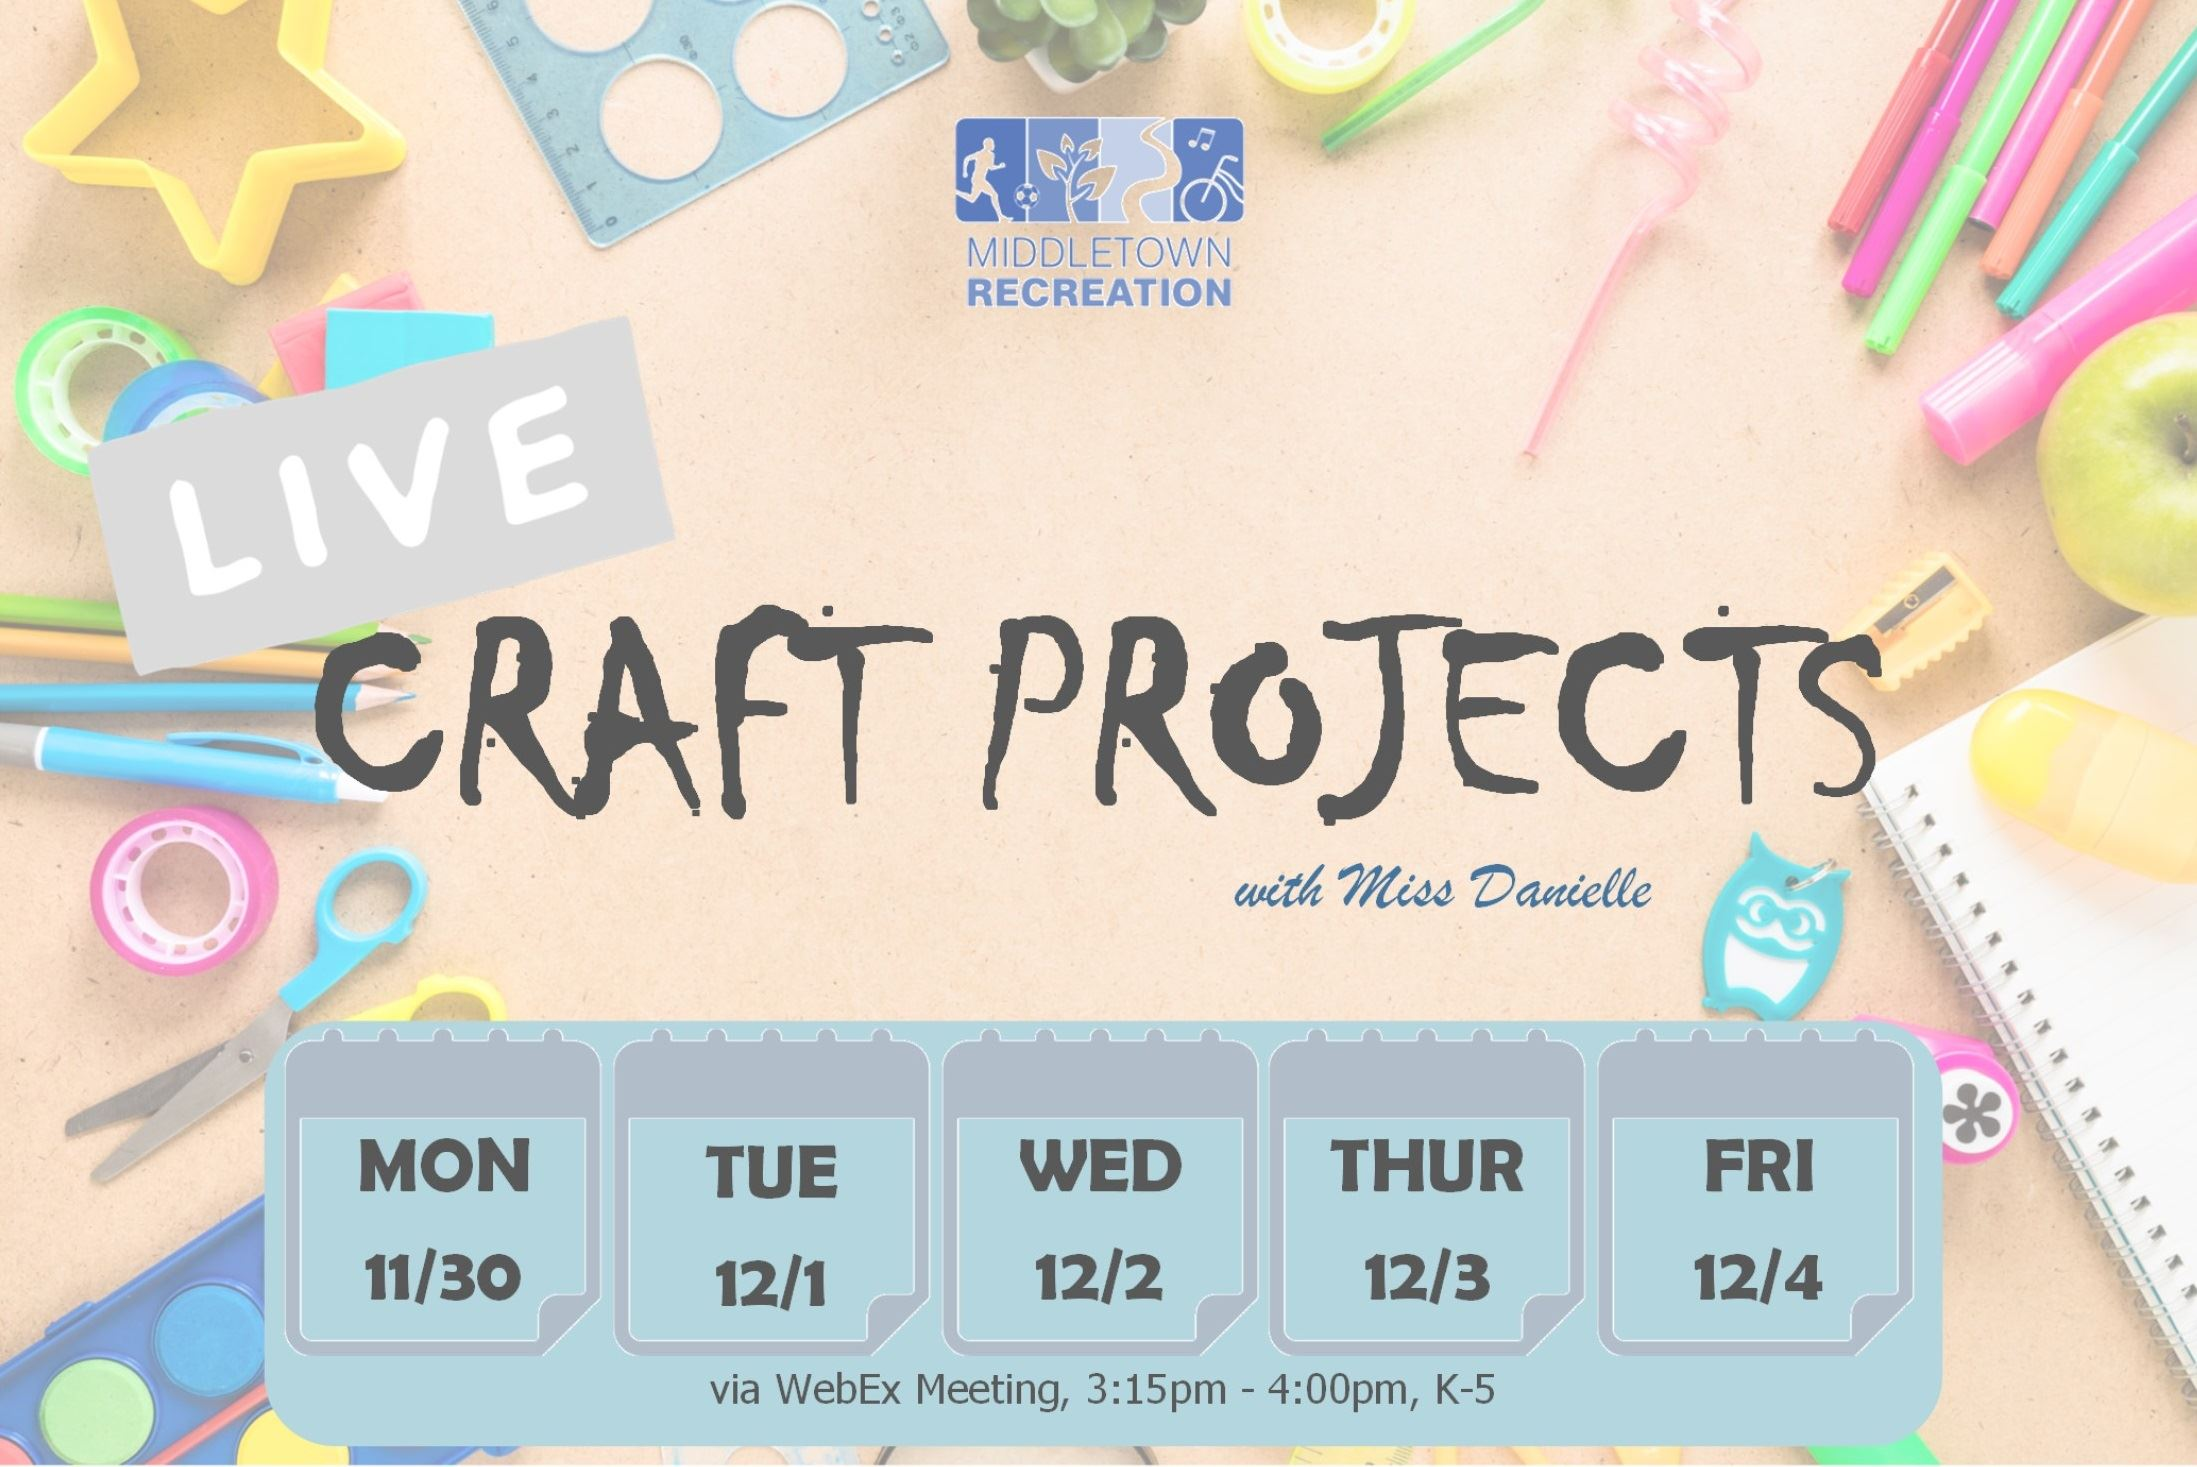 Promotional Graphic for Live Craft Projects with Miss Danielle, with Dates and Times.